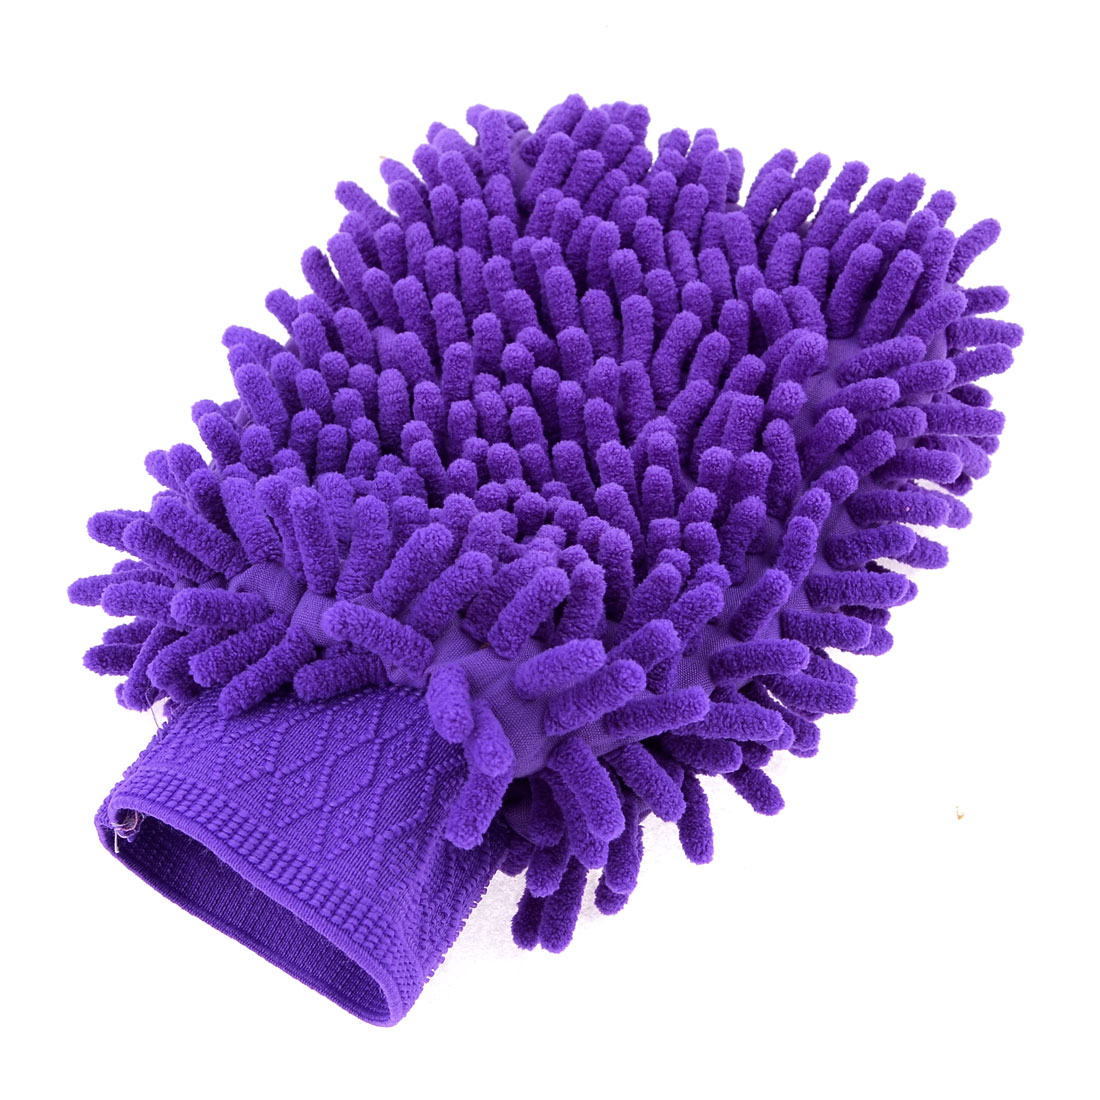 Household Stretch Chenille Furniture Window Scrubing Gloves Mittens Purple